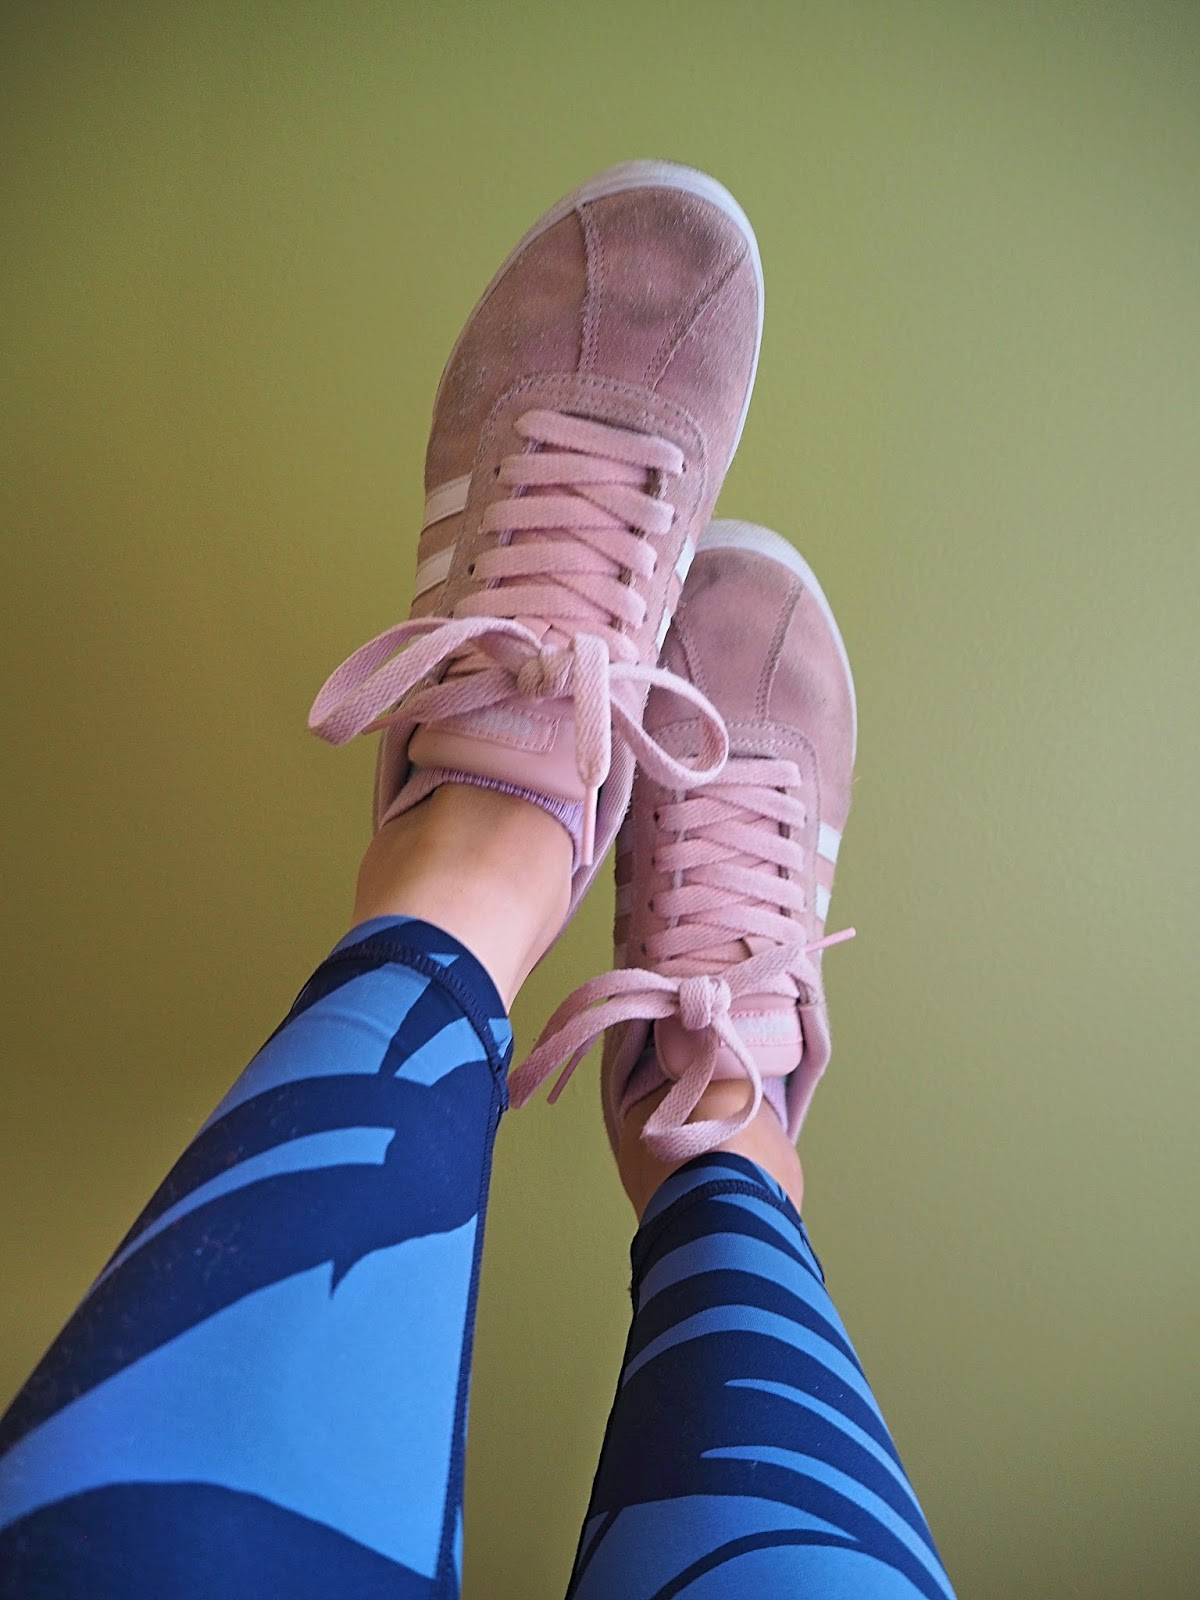 Aerie leggings and pink adidas sneakers